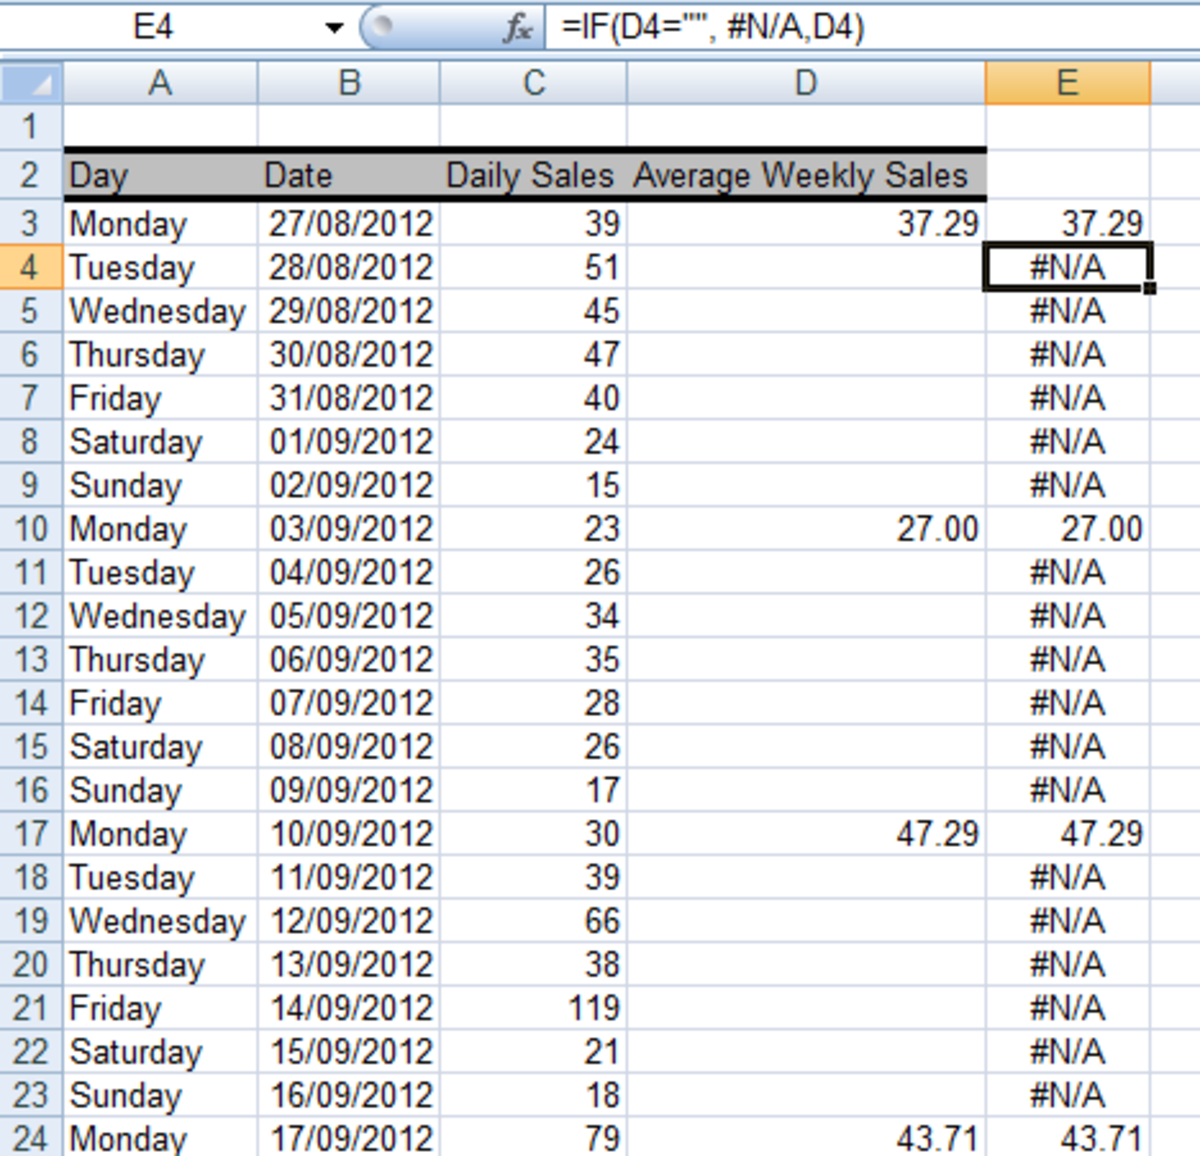 Ediblewildsus  Unique How To Get Excel  And  To Ignore Empty Cells In A Chart Or  With Exciting Using The If Function In A Formula To Convert Empty Cells To Na With Cute Asap Utilities For Excel Also Learn Excel Pivot Tables In Addition Create Invoice In Excel And Excel Tutorial For Mac As Well As Converting Numbers To Excel Additionally Excel Is Locked For Editing From Turbofuturecom With Ediblewildsus  Exciting How To Get Excel  And  To Ignore Empty Cells In A Chart Or  With Cute Using The If Function In A Formula To Convert Empty Cells To Na And Unique Asap Utilities For Excel Also Learn Excel Pivot Tables In Addition Create Invoice In Excel From Turbofuturecom